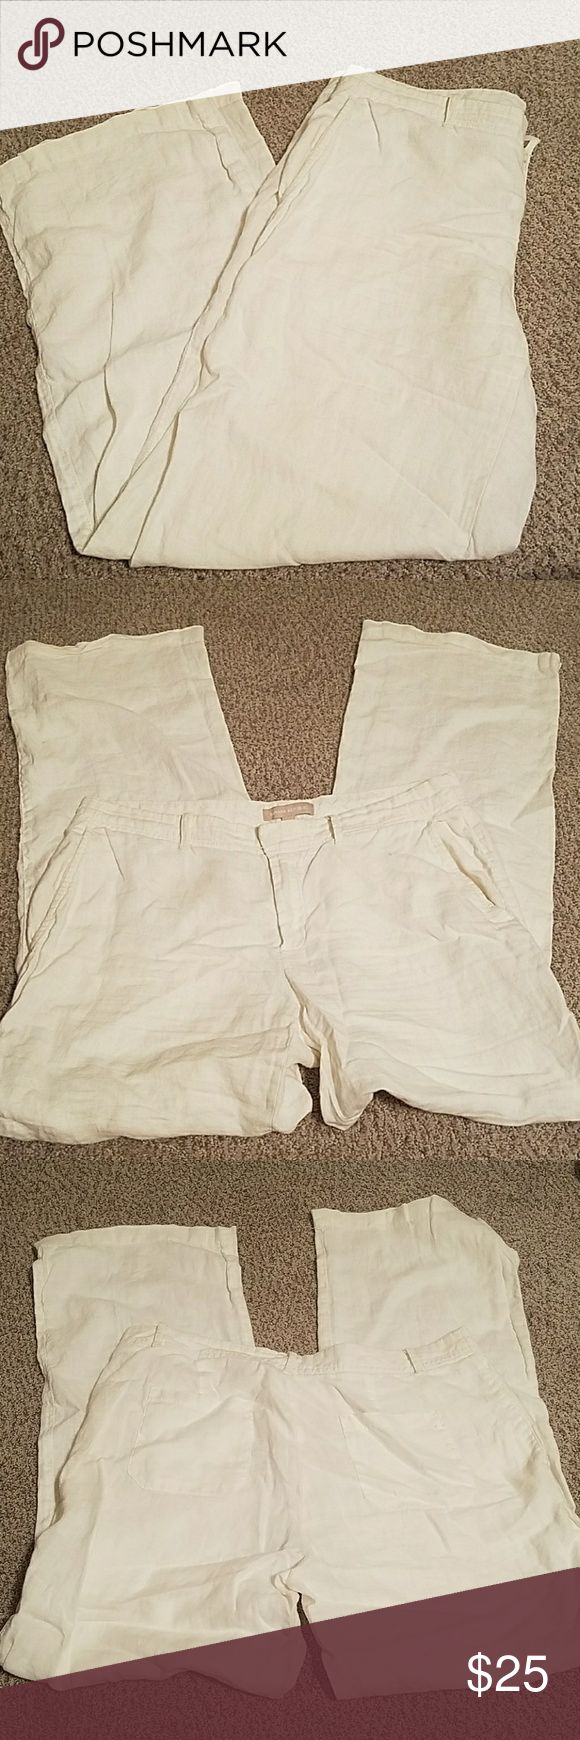 Banana Republic white linen trousers From their Cruise collection a few years back, wonderfully light and airy wide leg white linen trousers by Banana Republic in a size 8. They look beautiful with a strappy wedge. These have not fit me for quite some time, and have sat in my closet. They could do with a press. Other than that the only flaw that I could find was a very small spot on the back left, just to the left of the pocket, as shown in the last picture. Banana Republic Pants Trousers